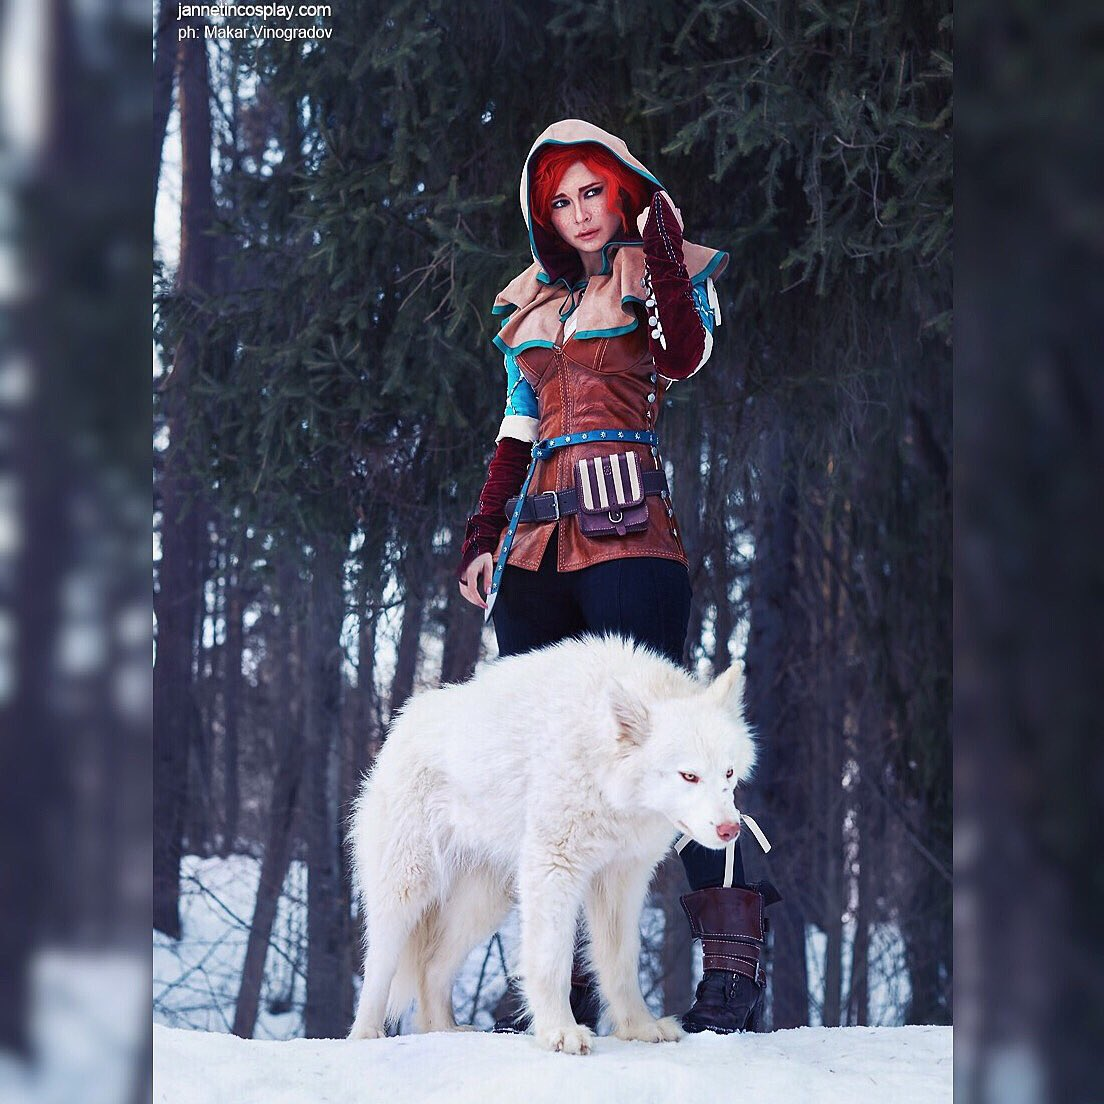 Found Geralt!  It's time to start the quest in order to restore his former body!  White Wolf feel so comfy in cold Ask all you want ^^ today I can answer all comments  #Triss #wolf #whitewolf #forest #teissmerigold #trisscosplay #cosplay #russia #cold #winter #thewitcher<br>http://pic.twitter.com/Sk2QhFec6l